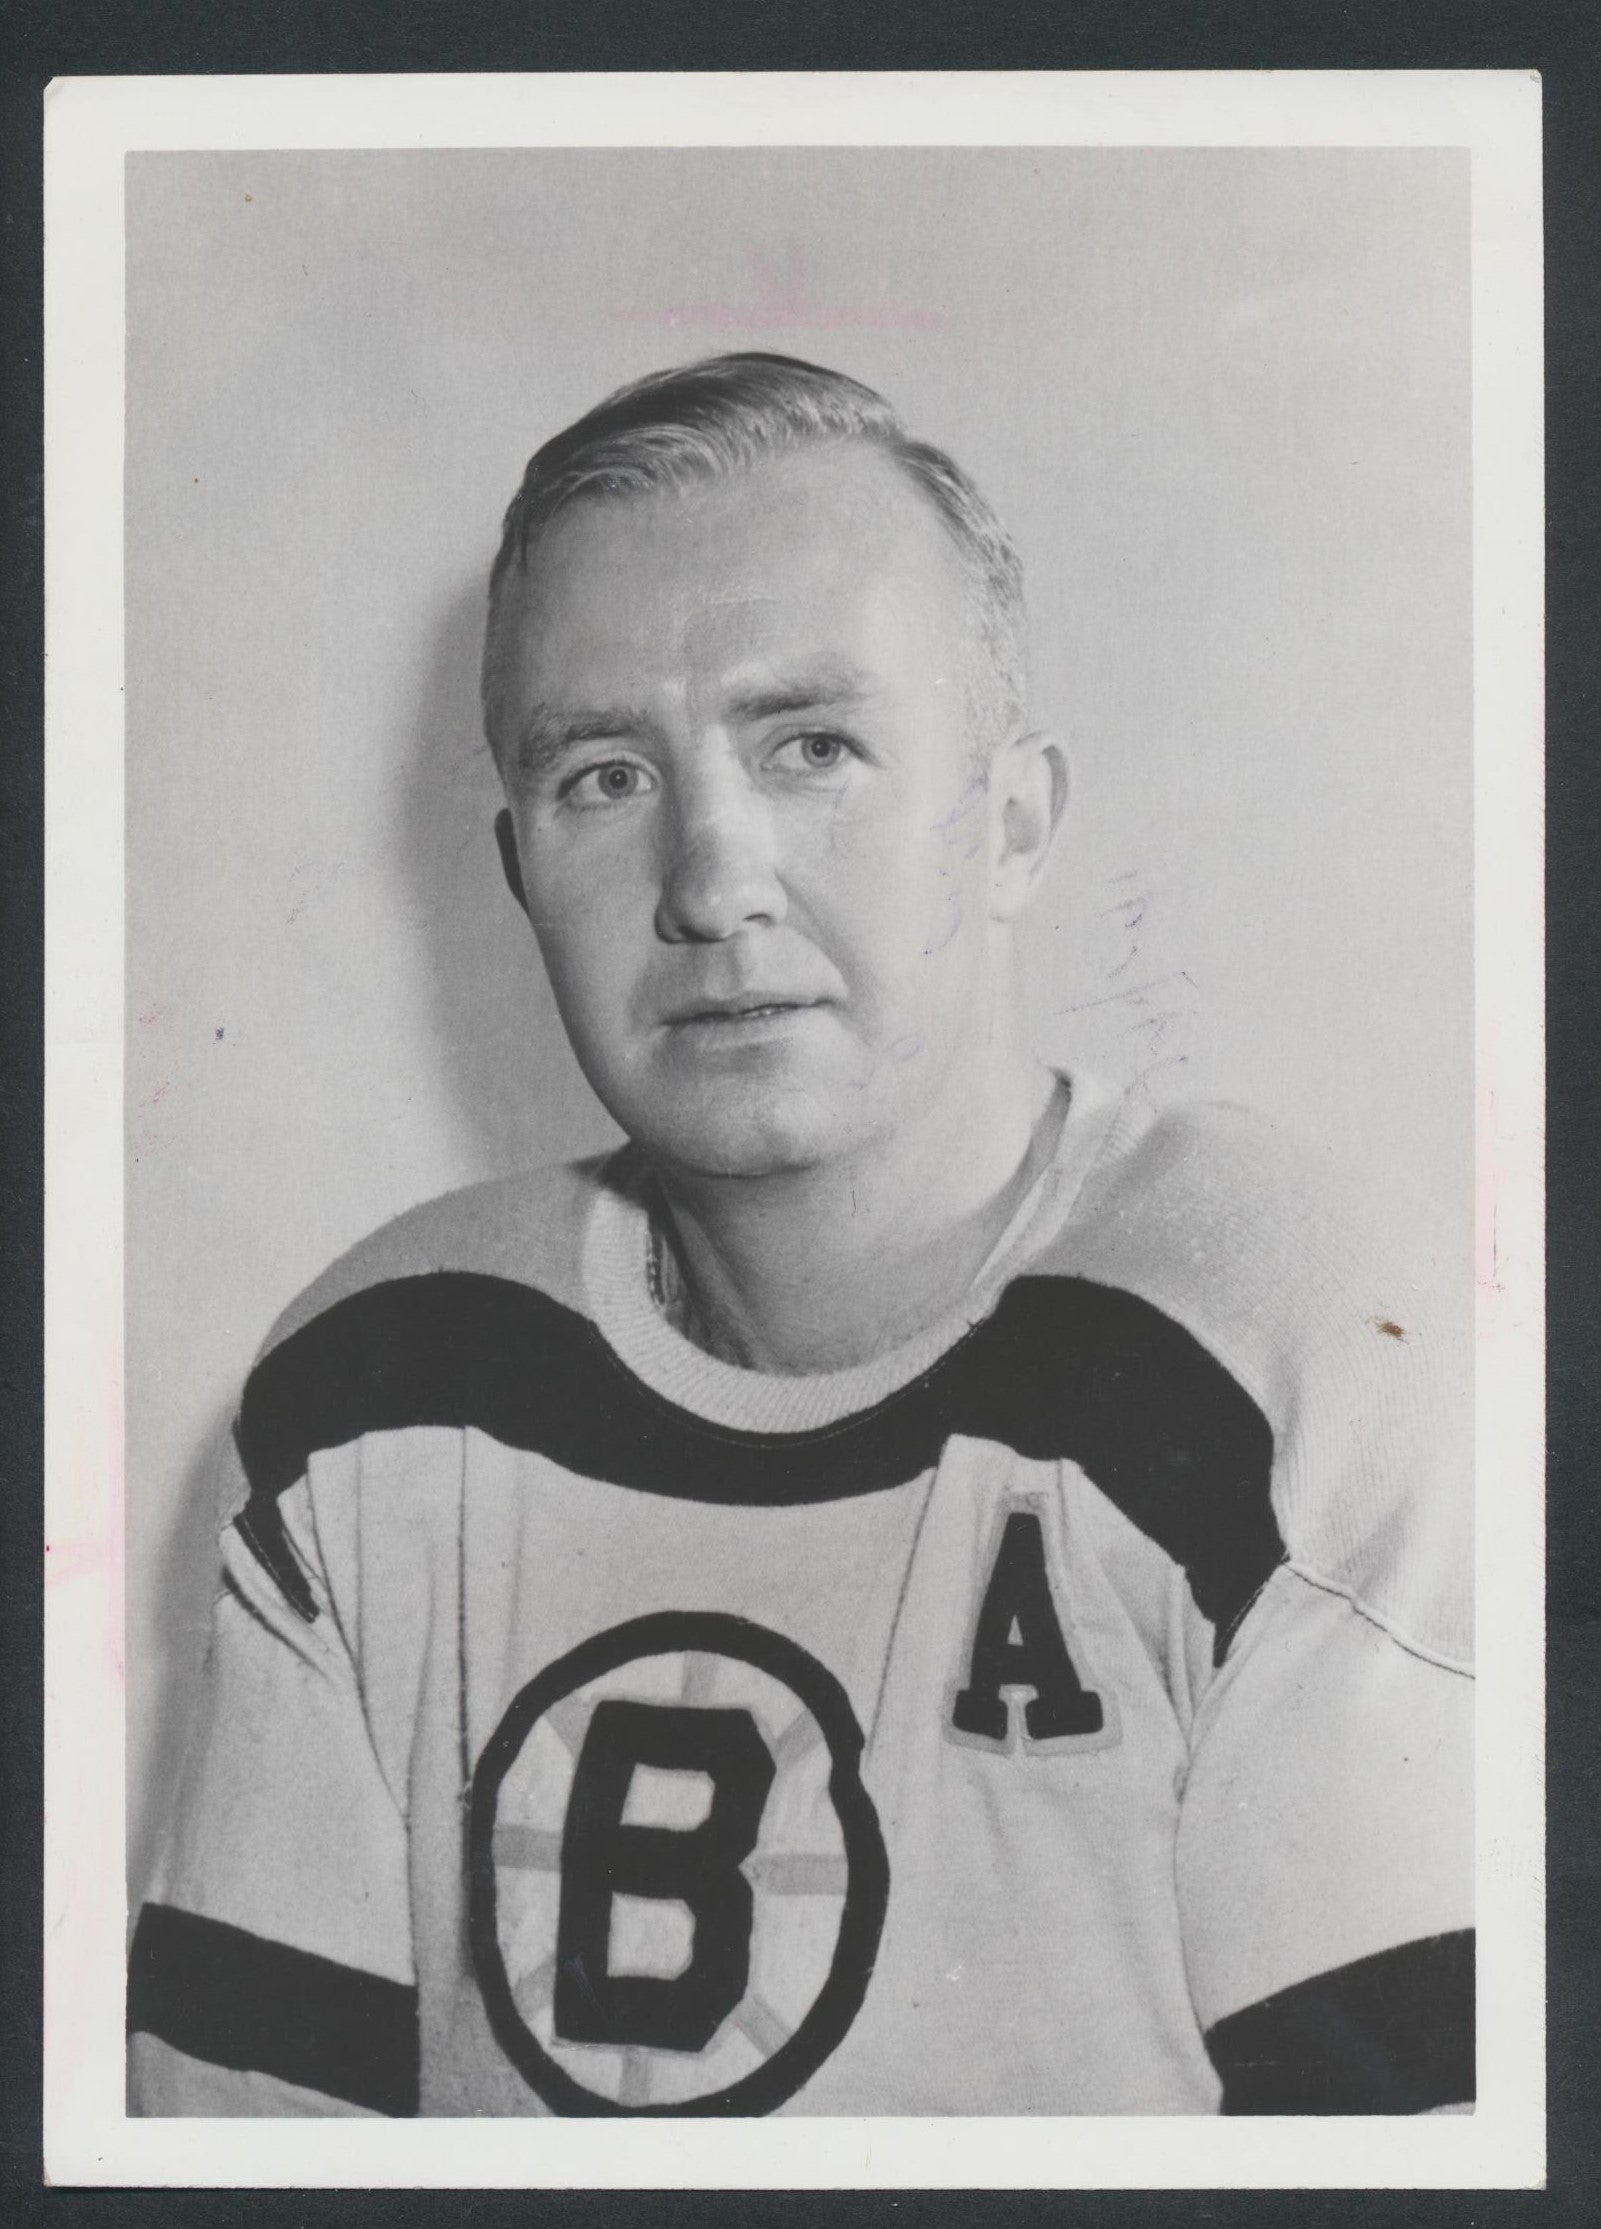 Original Bill Quackenbush HOF -Boston Bruins   Hockey Press Photo 1965  Vintage NHL Hockey Pic  News Archives